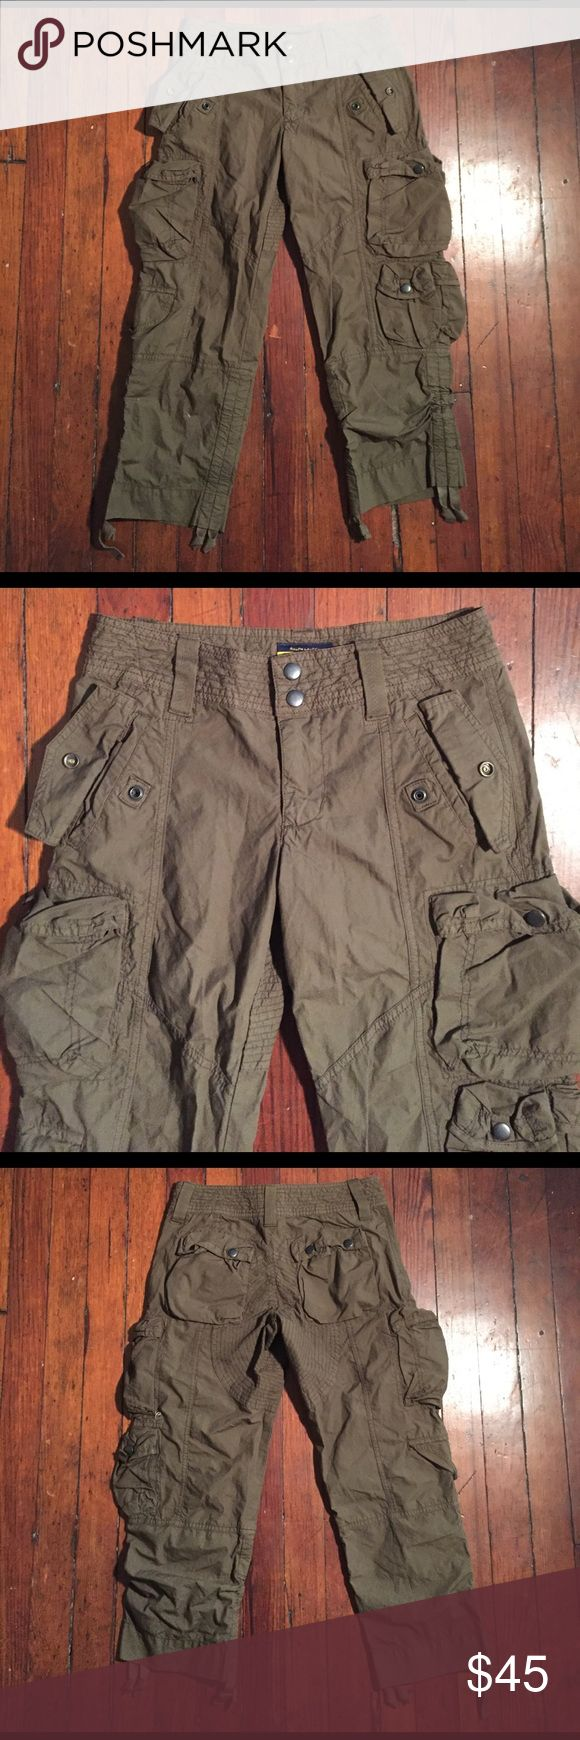 """RALPH LAUREN Green Military Cargo Capri Sz 0 For your consideration is a RALPH LAUREN green military cargo capri pant Sz 0. Pants features classic details with a mod update and great stitching details. Pants is in great condition and inseam is 23"""". Message with questions and thanks for stopping by. Ralph Lauren Rugby Pants Capris"""